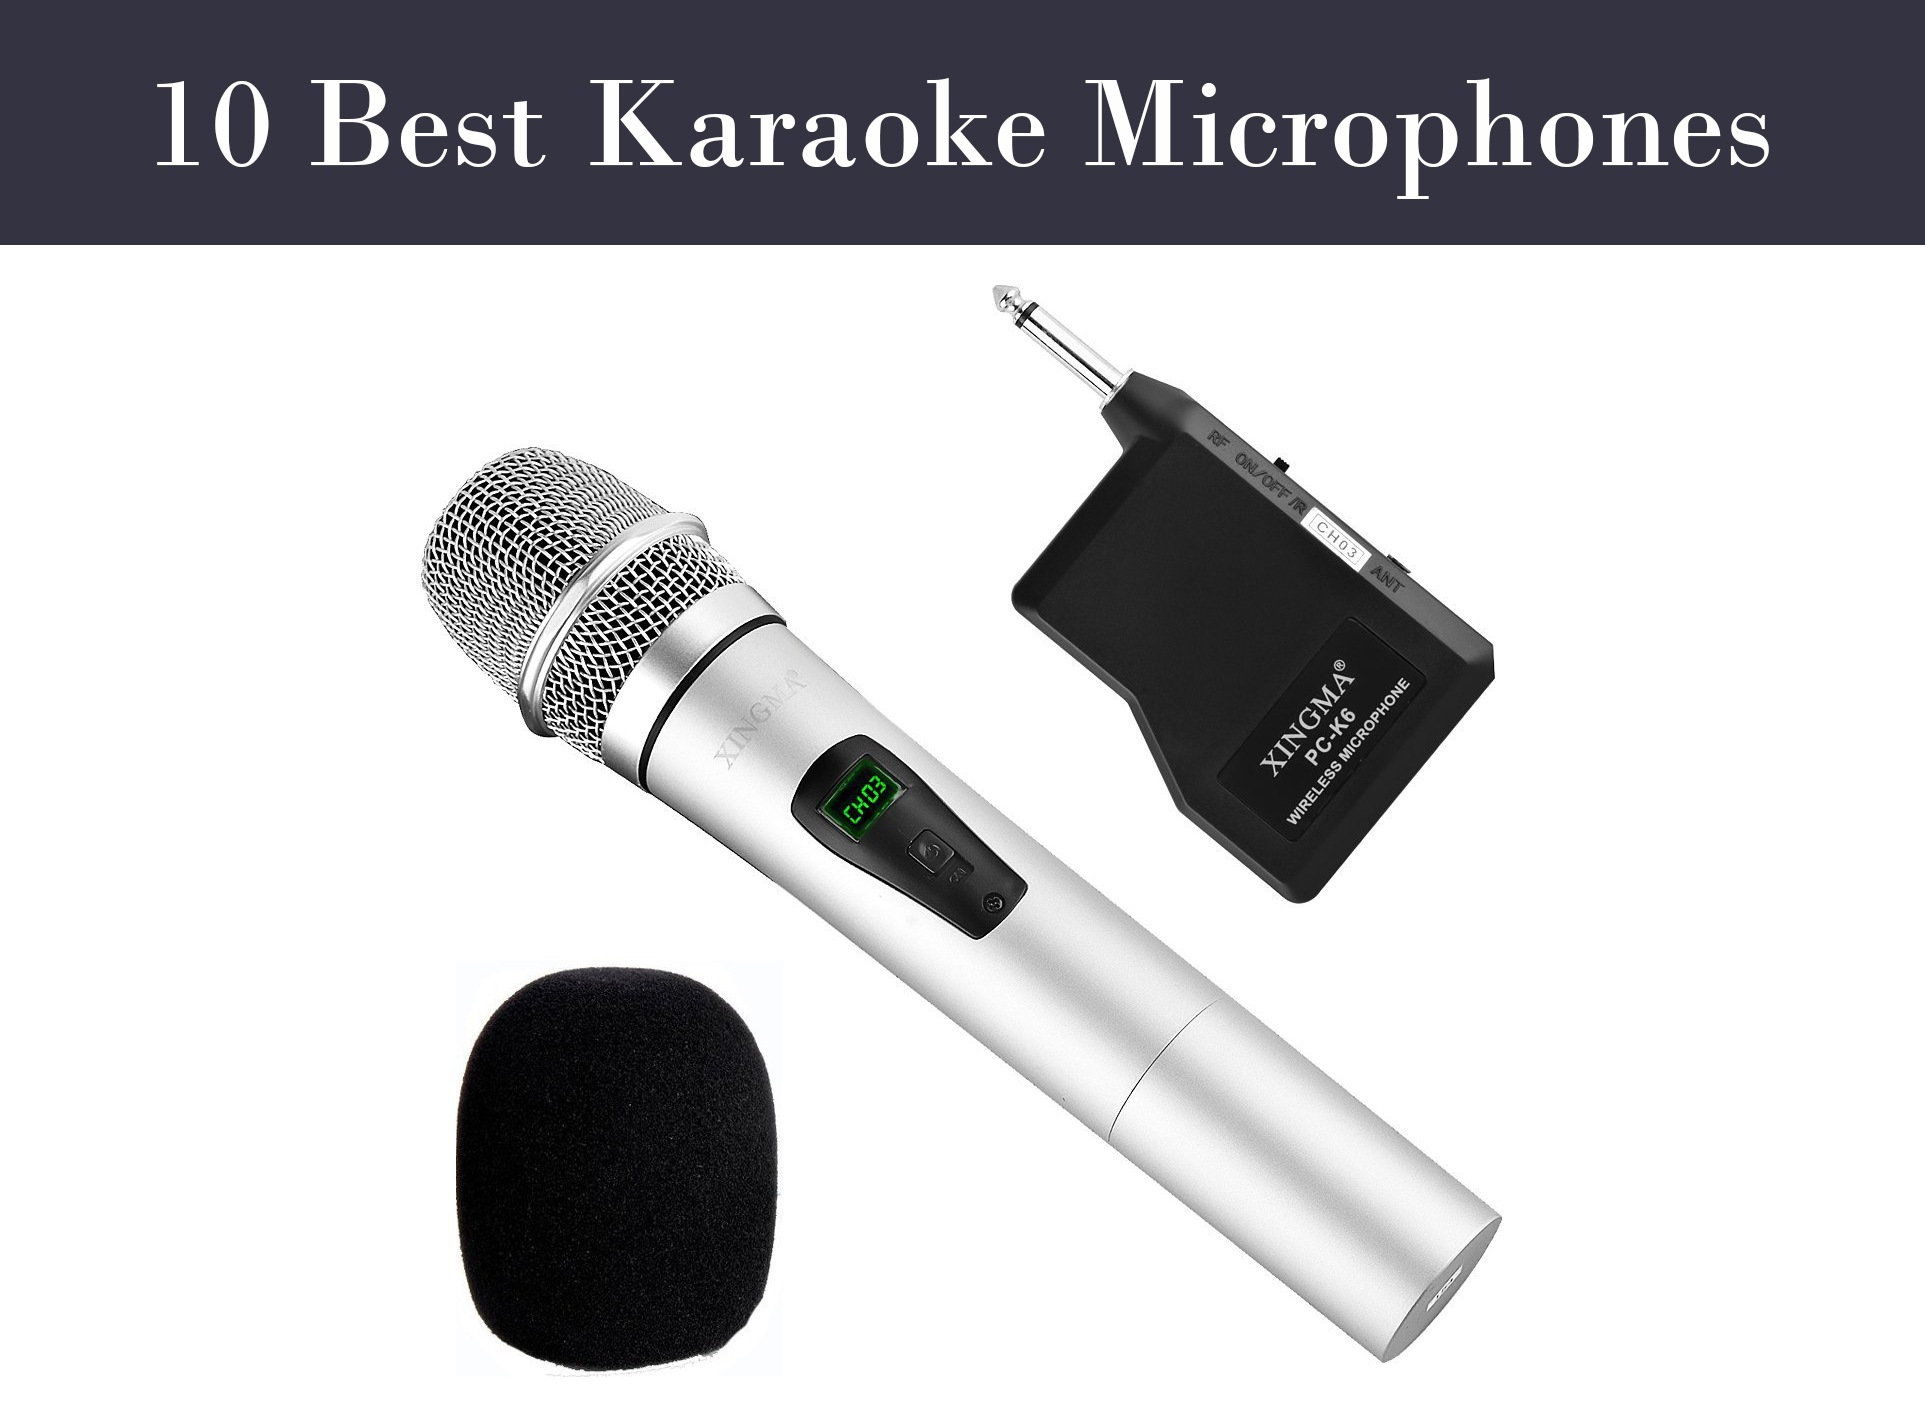 10 Best Karaoke Microphones to Buy (2019) - Karaoke Bananza